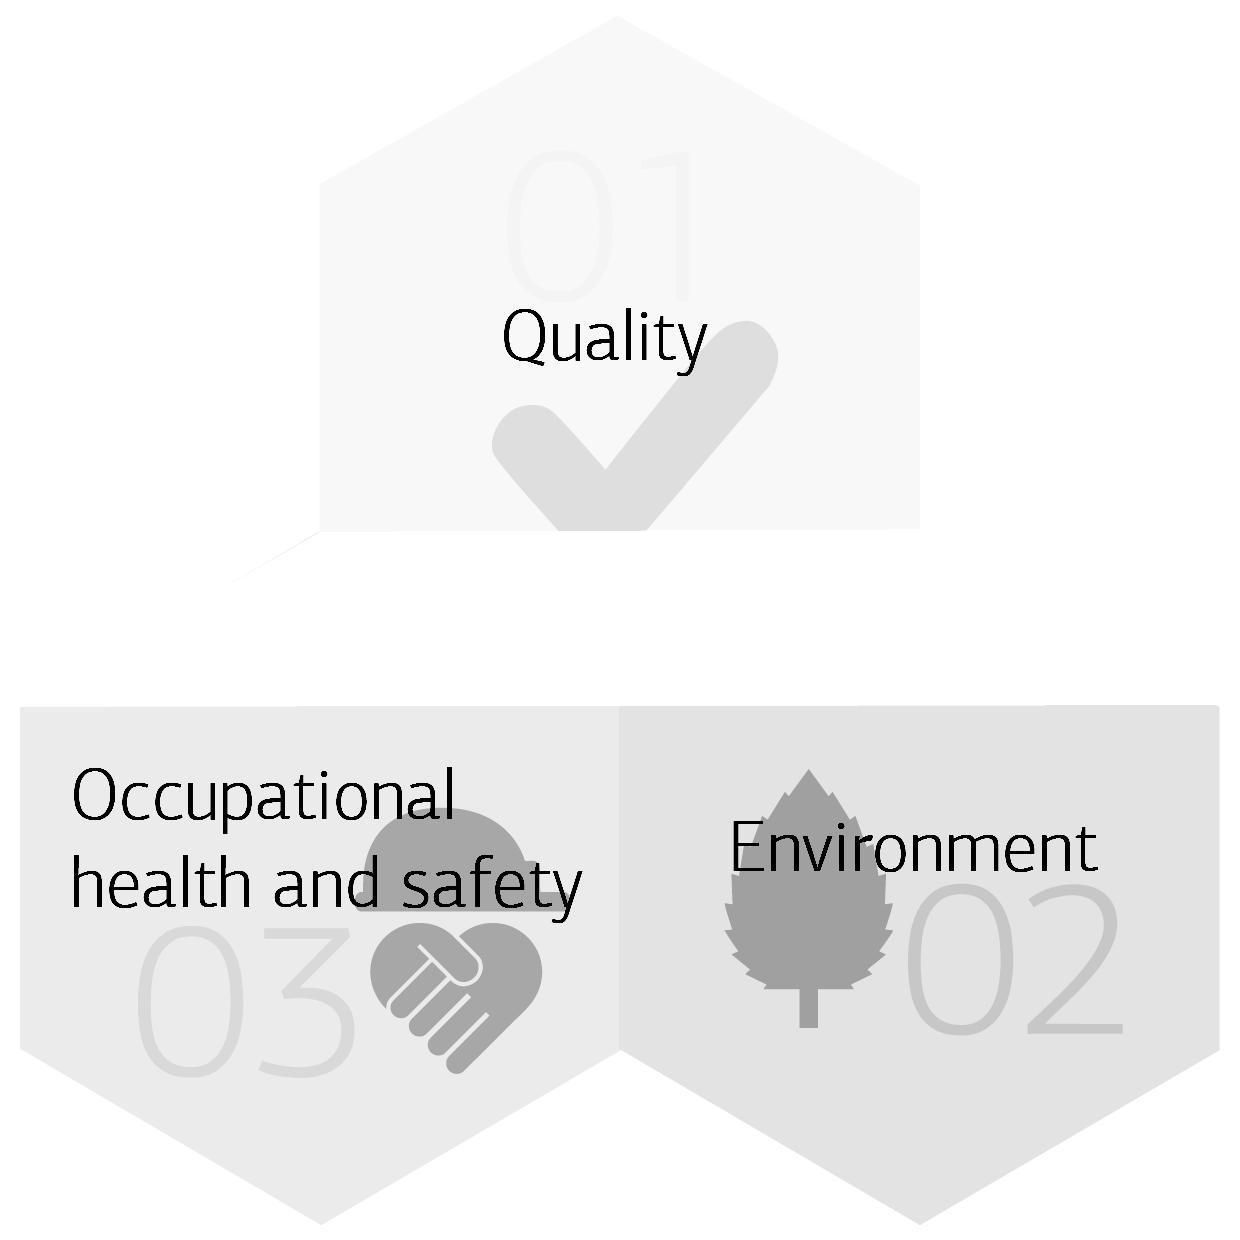 ISO,IMS,quality,safety,environment,health